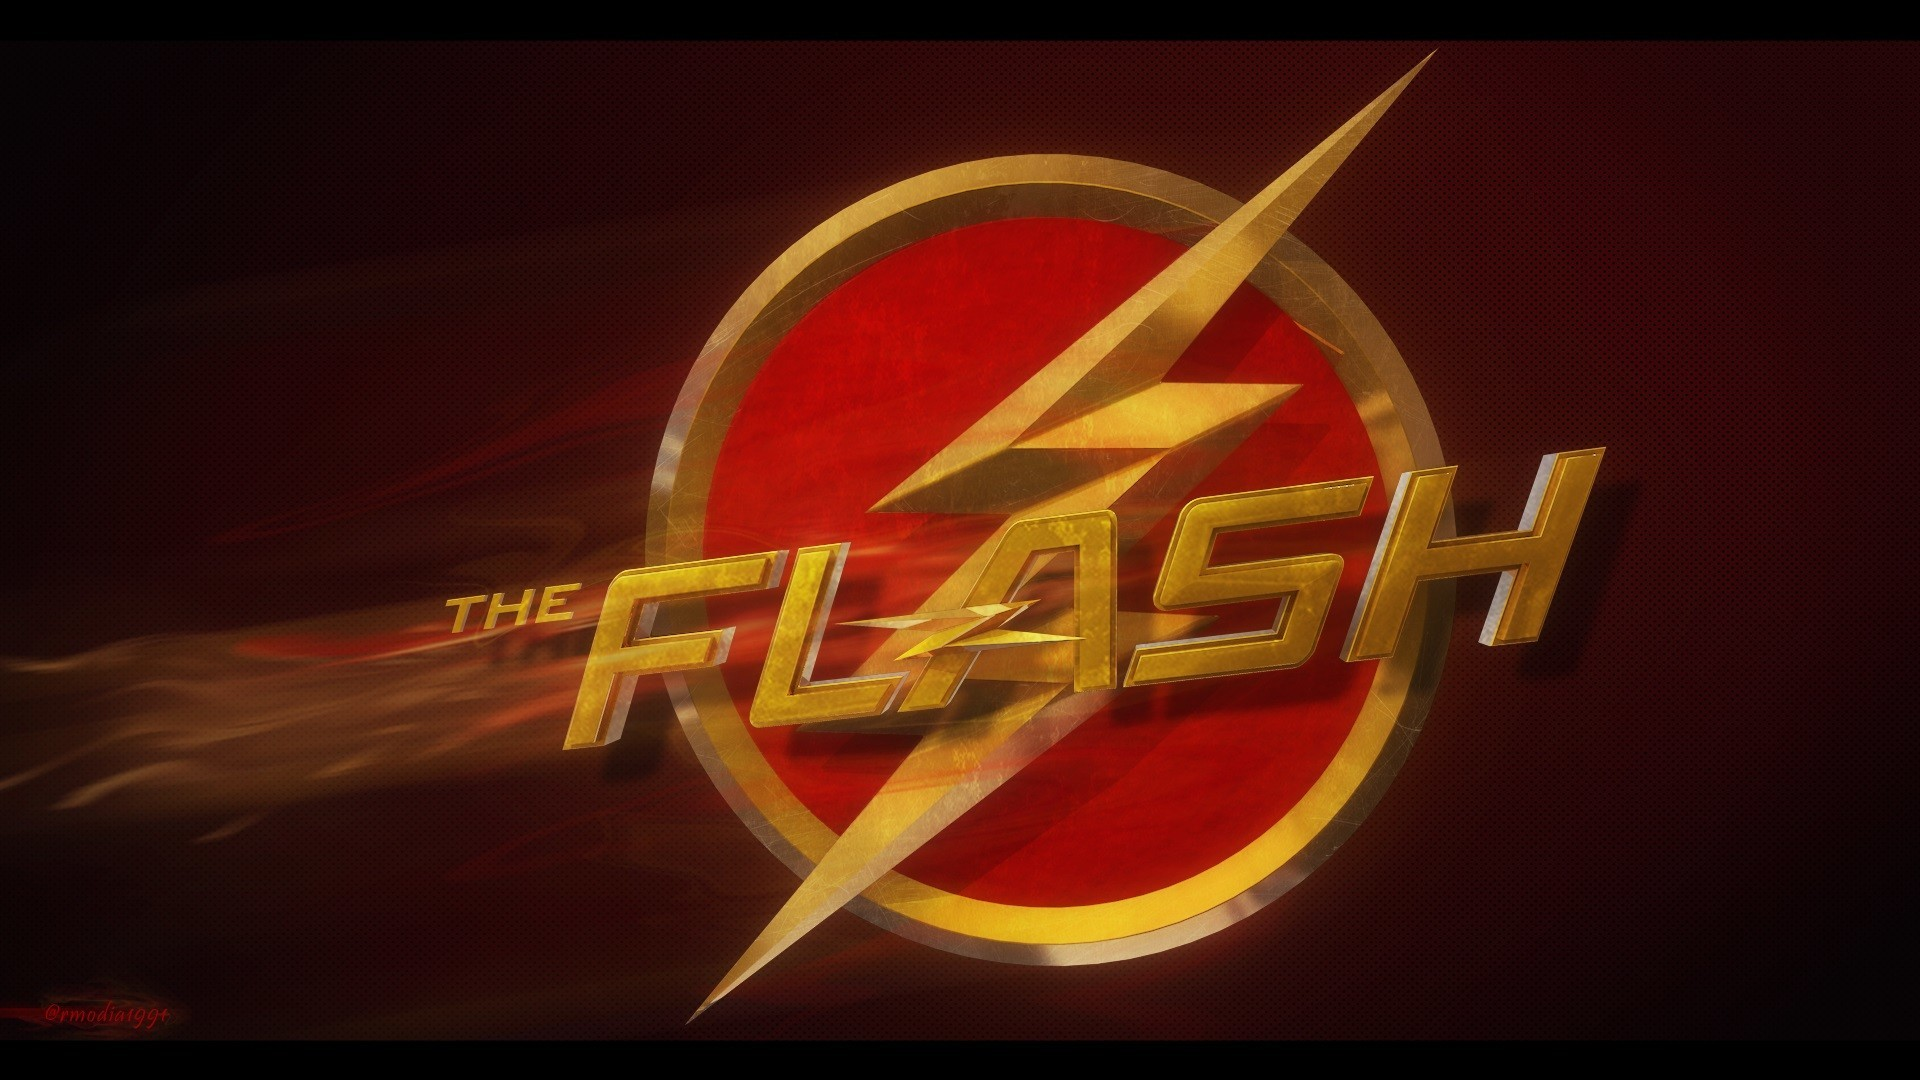 The Flash Logo Background Data Src Flash Symbol Wallpaper Emblem 1920x1080 Download Hd Wallpaper Wallpapertip If you have your own one, just send us the image and we will show it on the. the flash logo background data src